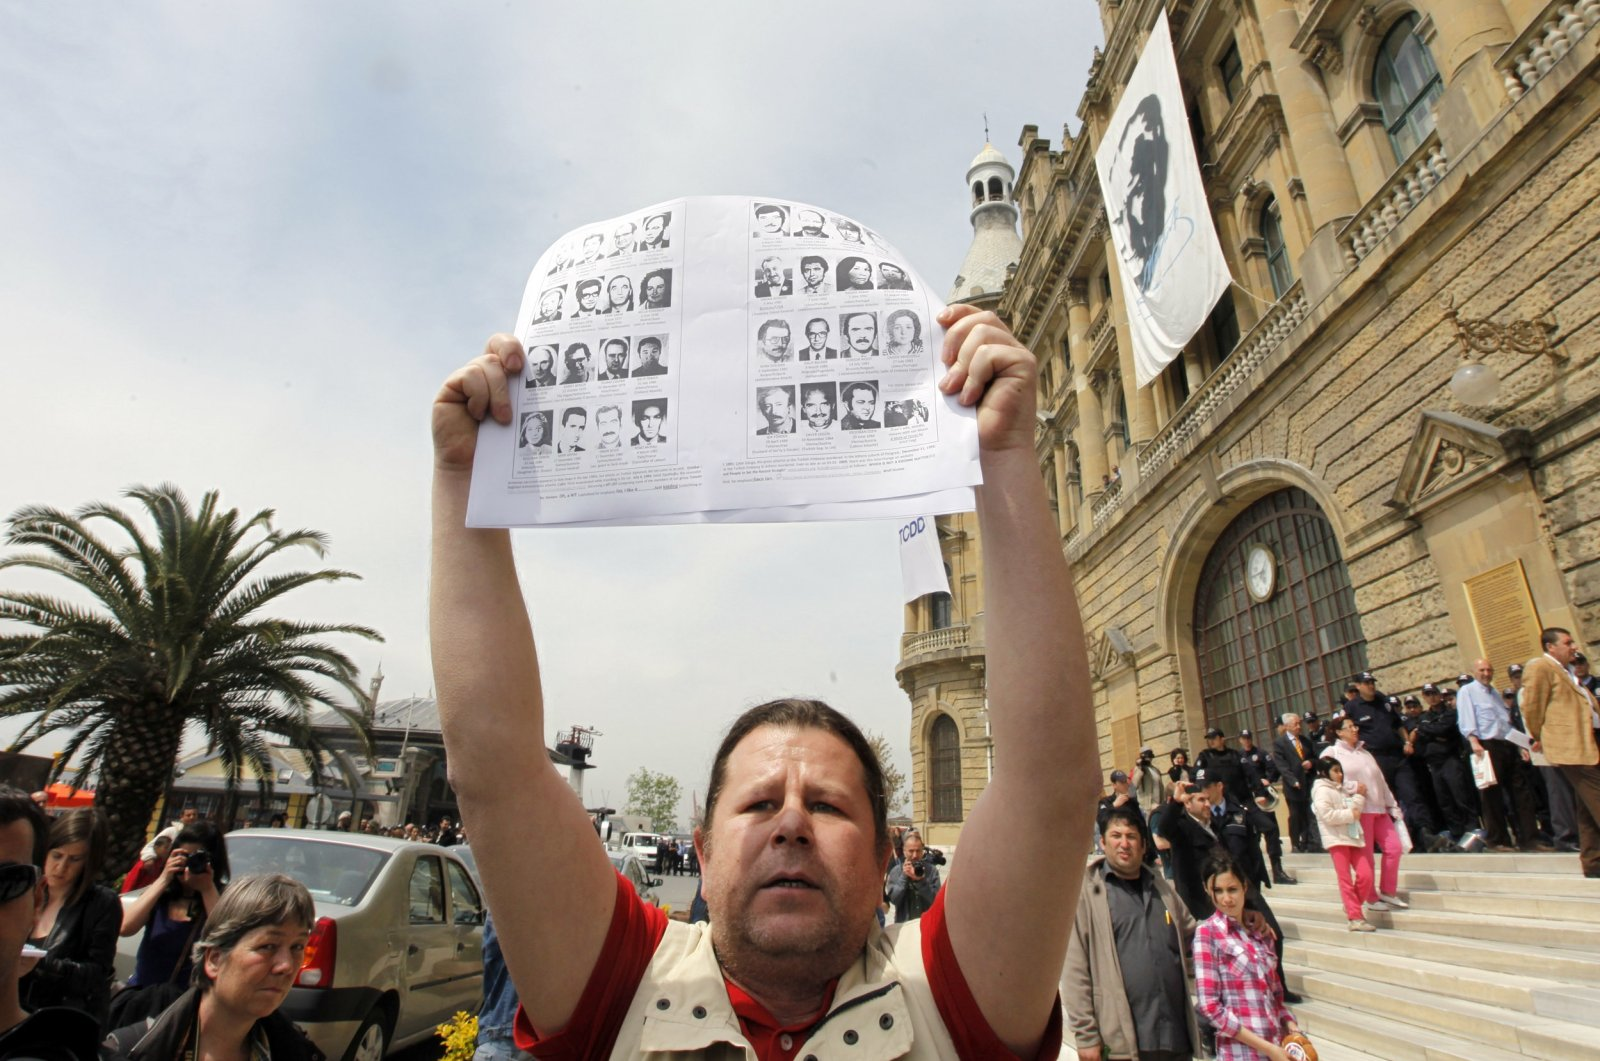 A Turkish man holds pictures of Turkish officials, including ambassadors and consuls, who were killed by a terrorist belonging to the now-defunct Armenian Secret Army for the Liberation of Armenia (ASALA), in response to a demonstration to commemorate the 1915 events in the Ottoman Empire, in front of the historical Haydarpaşa station in Istanbul, Turkey, April 24, 2010. (Reuters Photo)